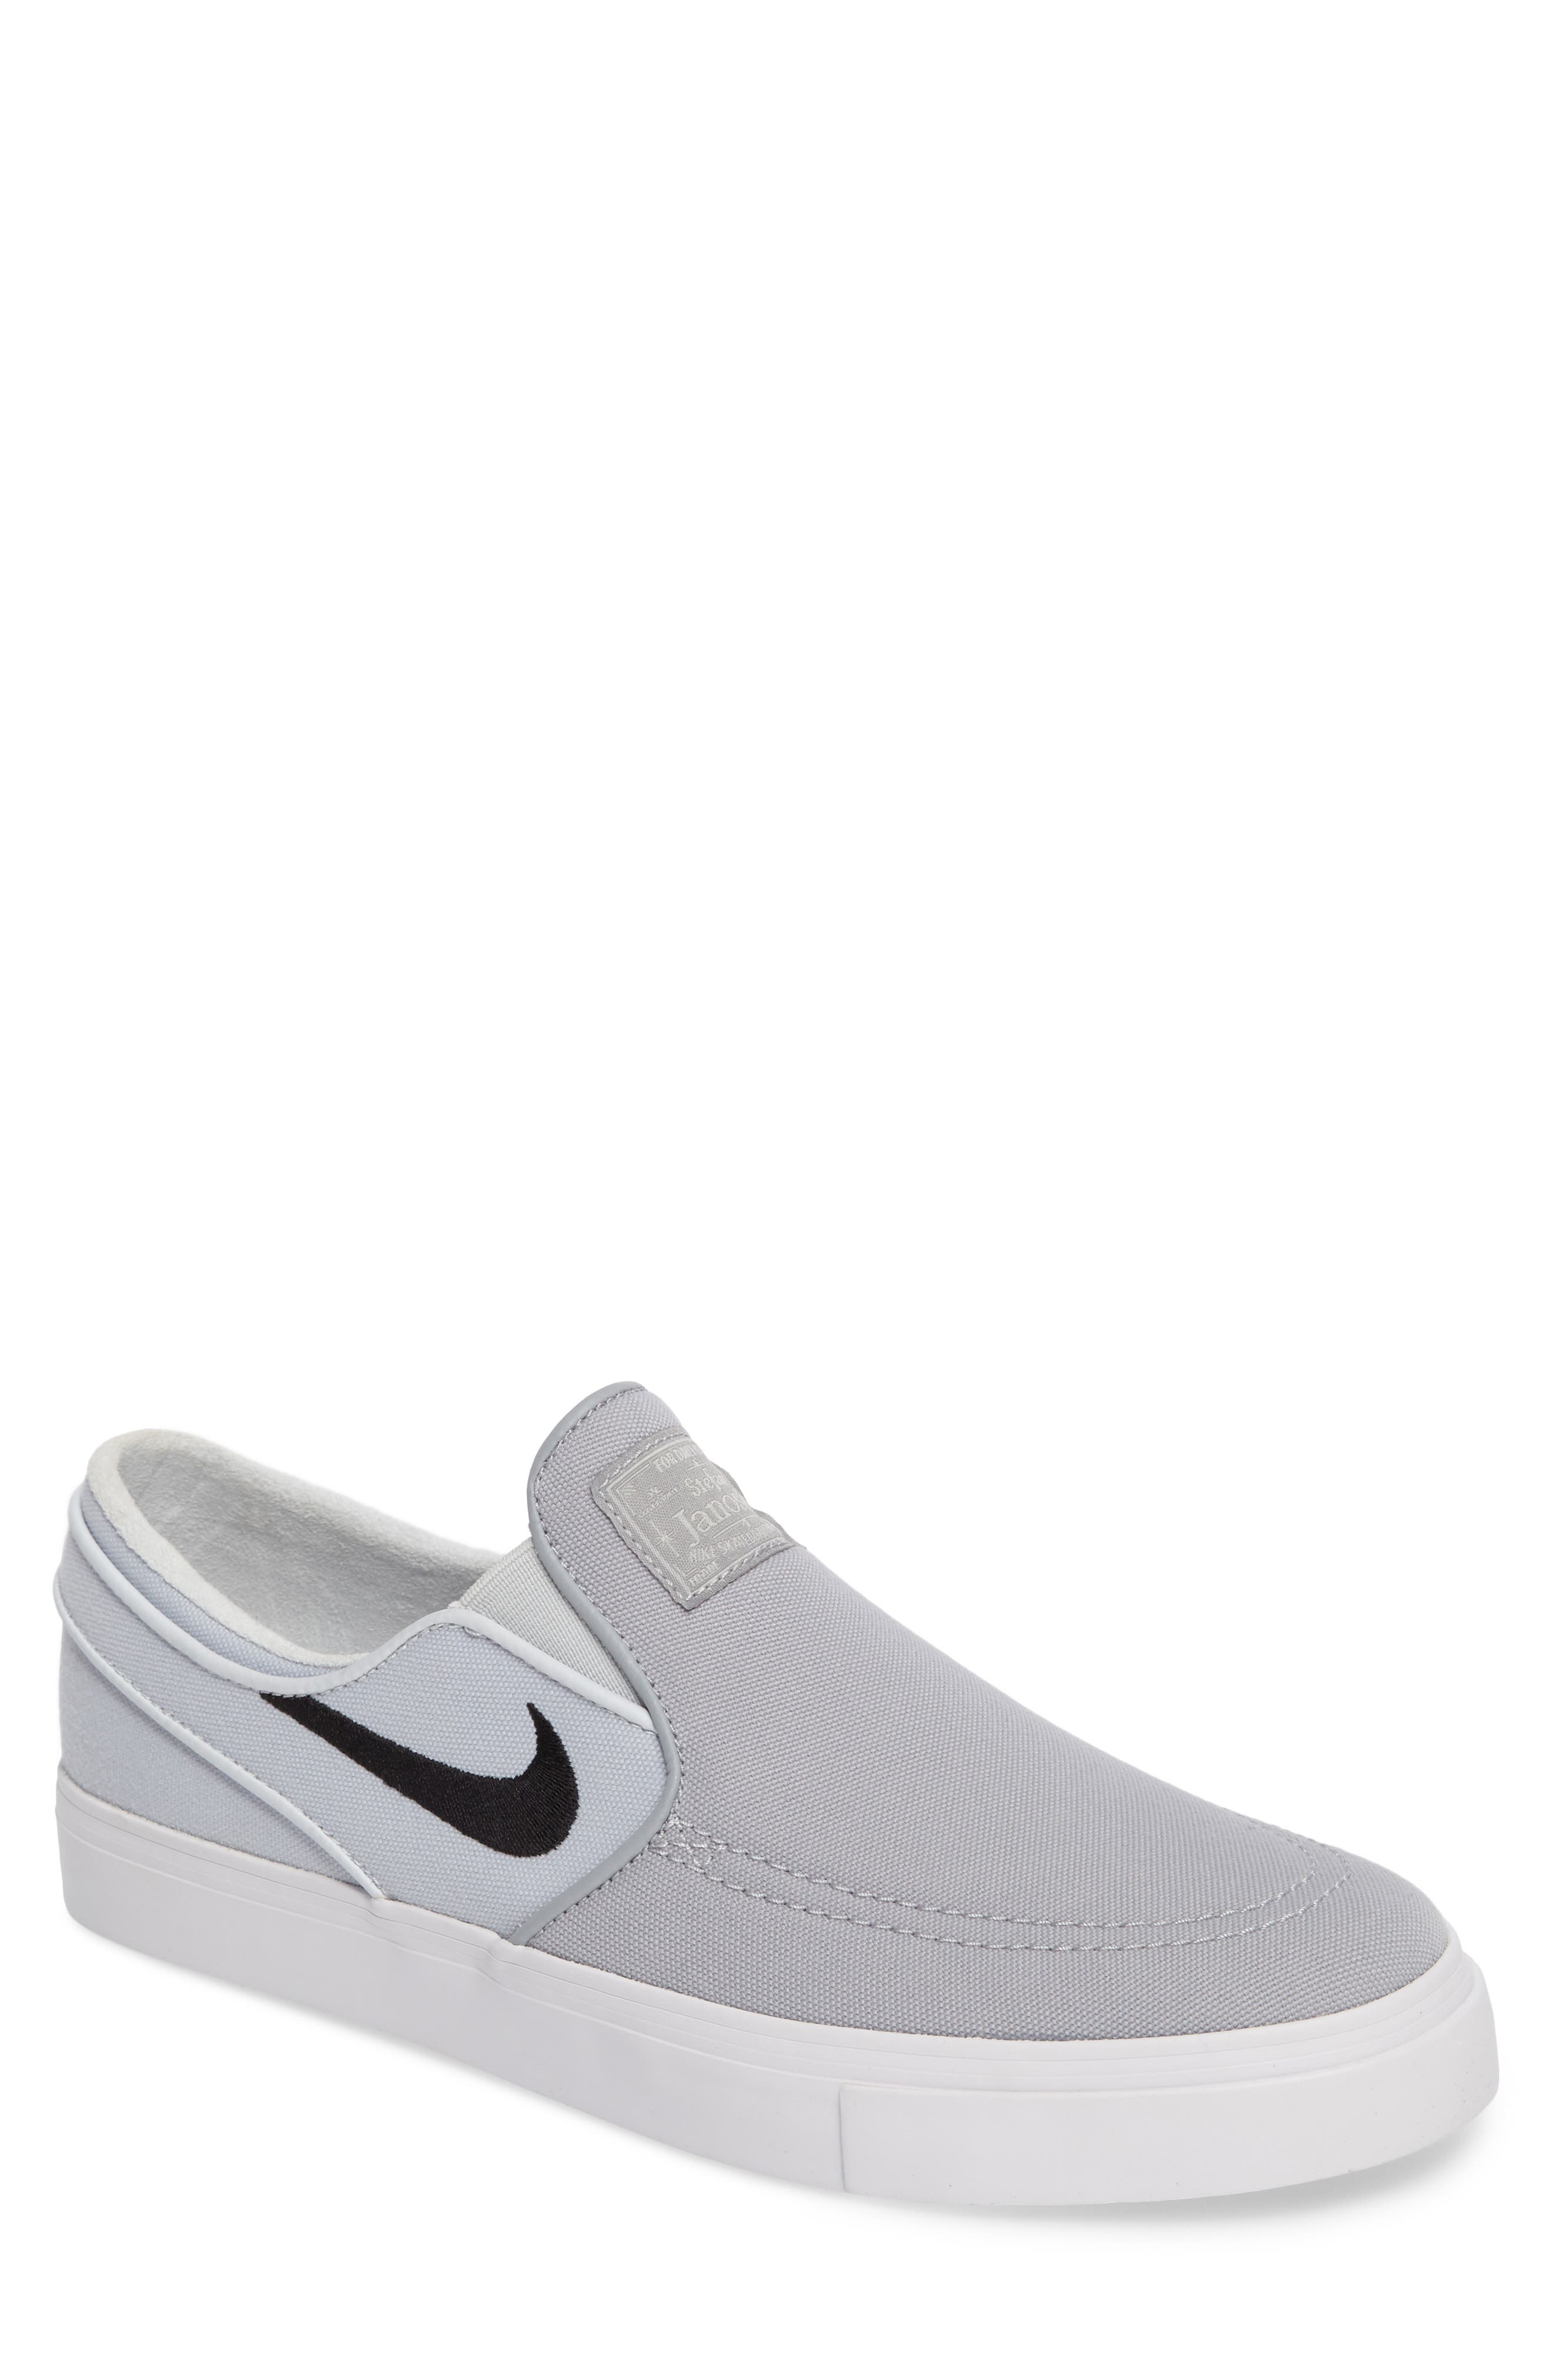 Main Image - Nike 'Zoom Stefan Janoski' Slip-On (Men)